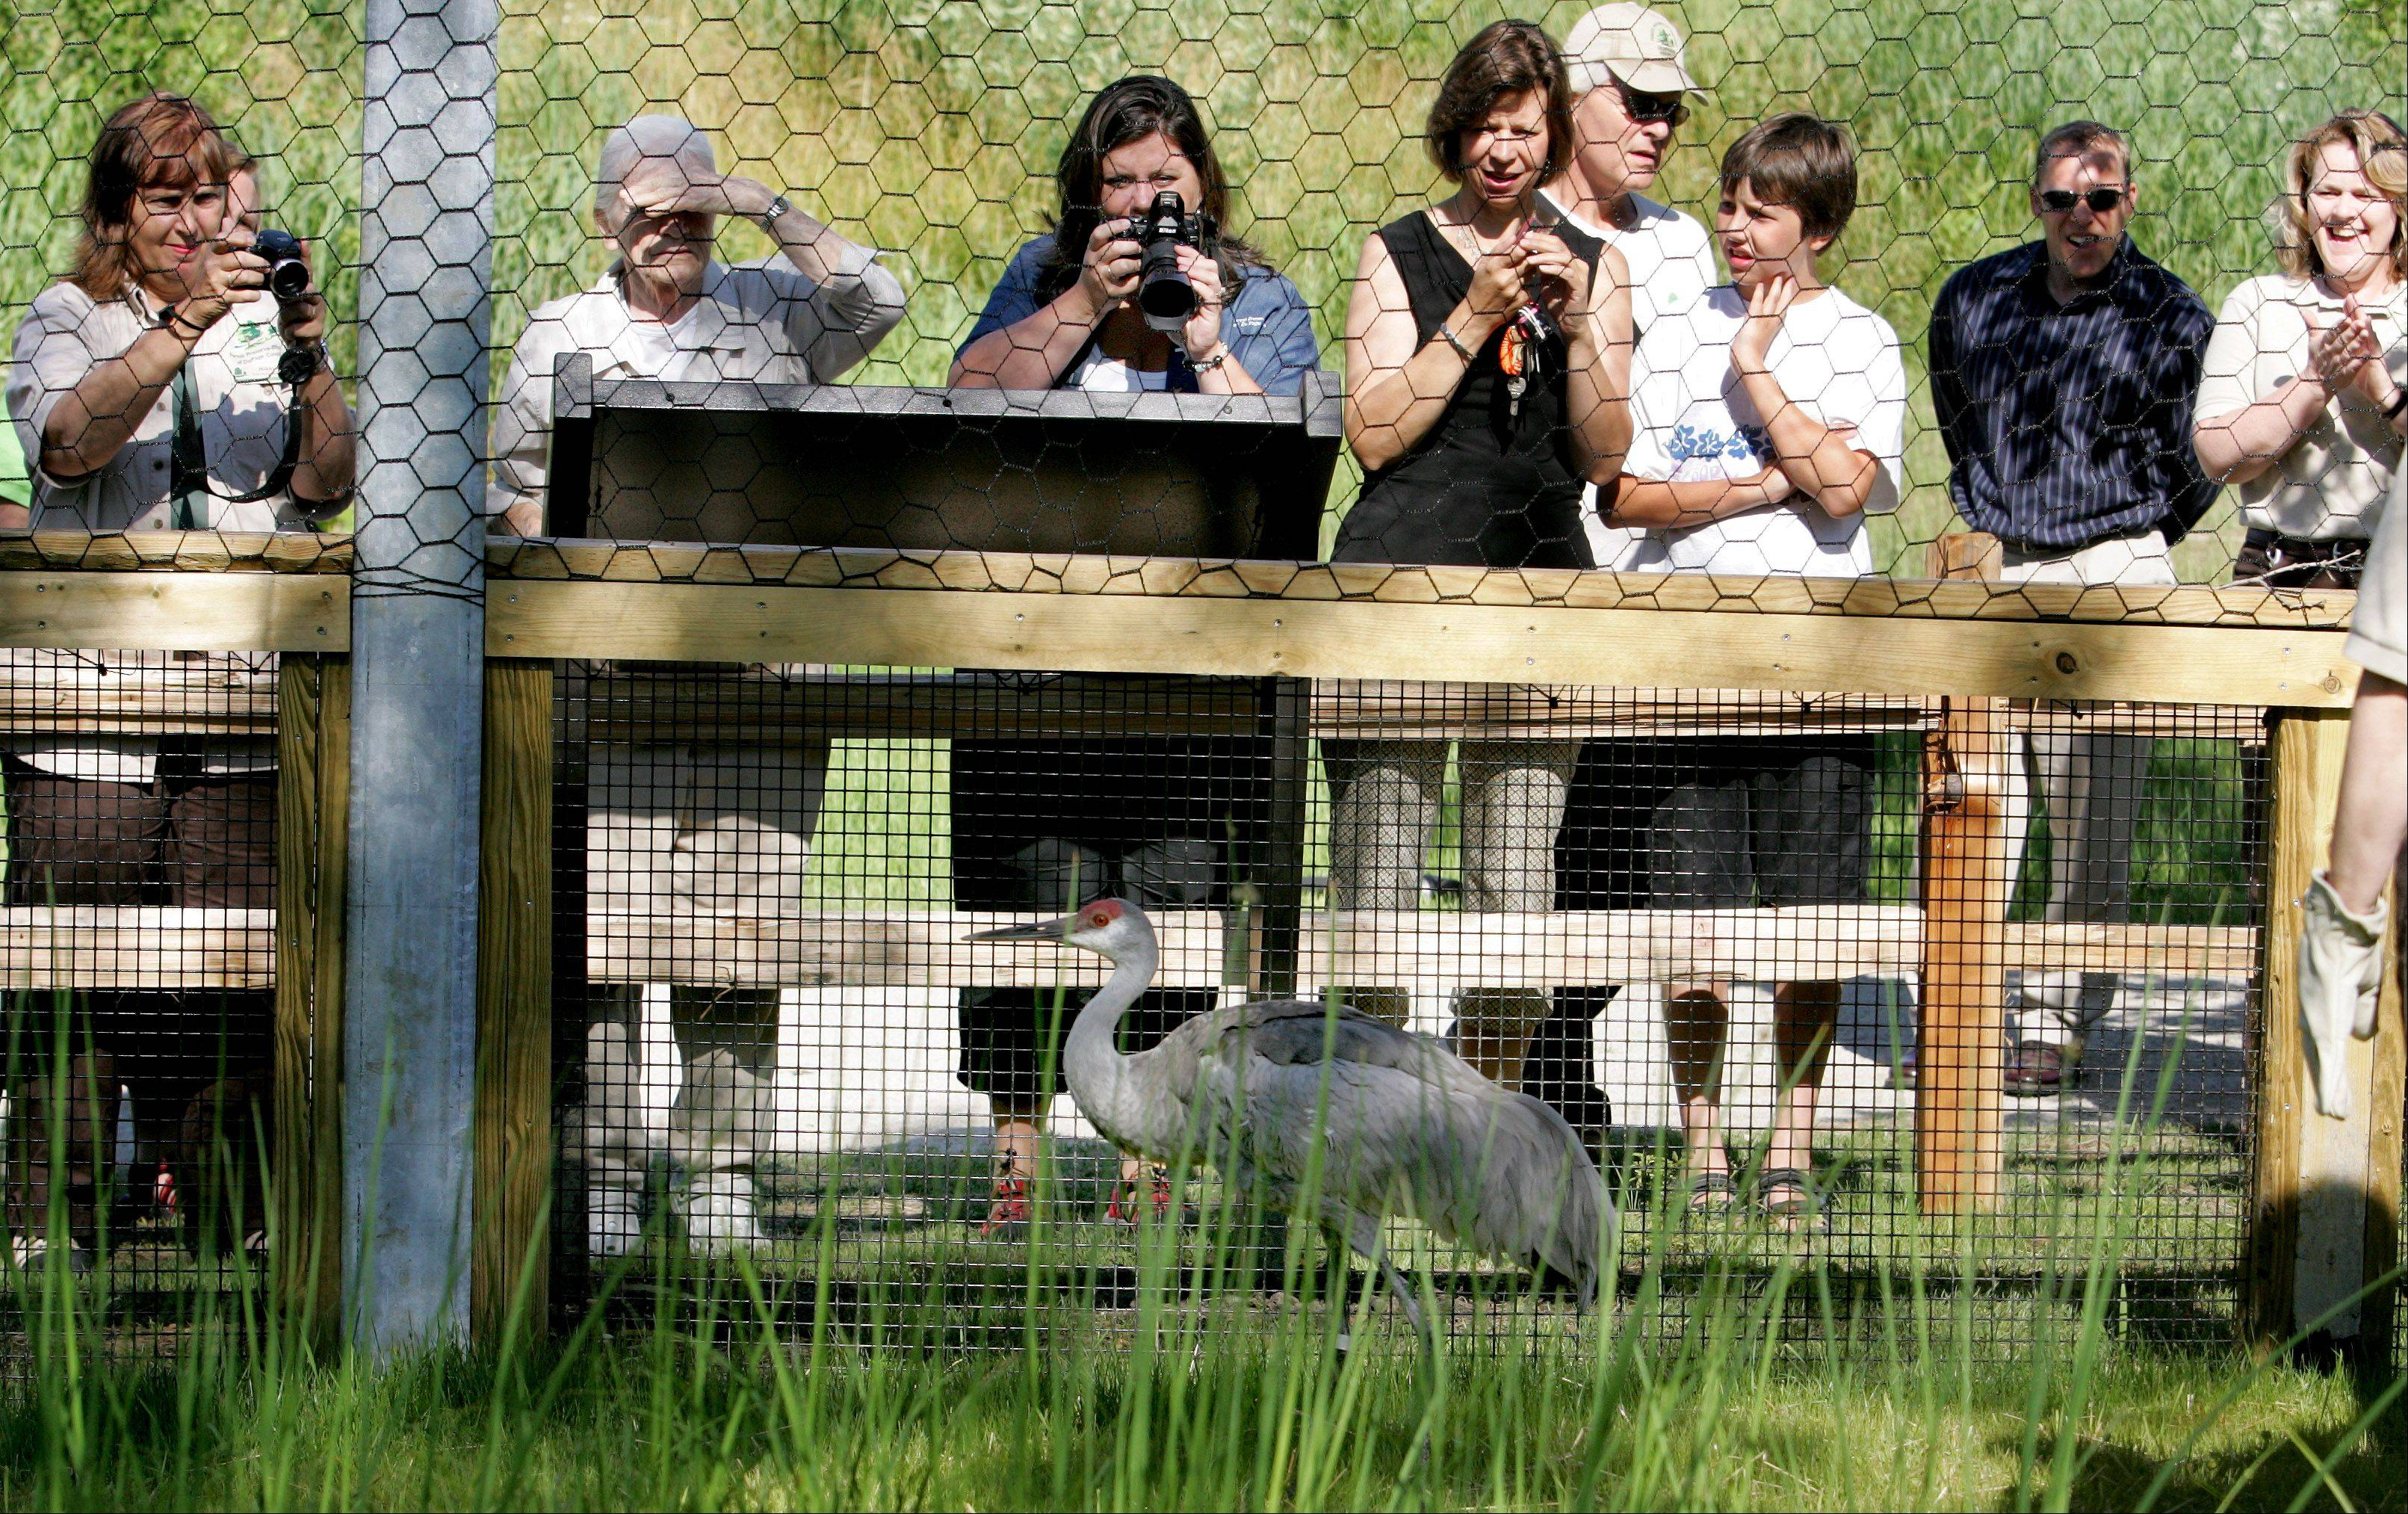 Willowbrook Wildlife Center in Glen Ellyn has begun a series of improvements designed to better serve its roughly 100,000 visitors a year.